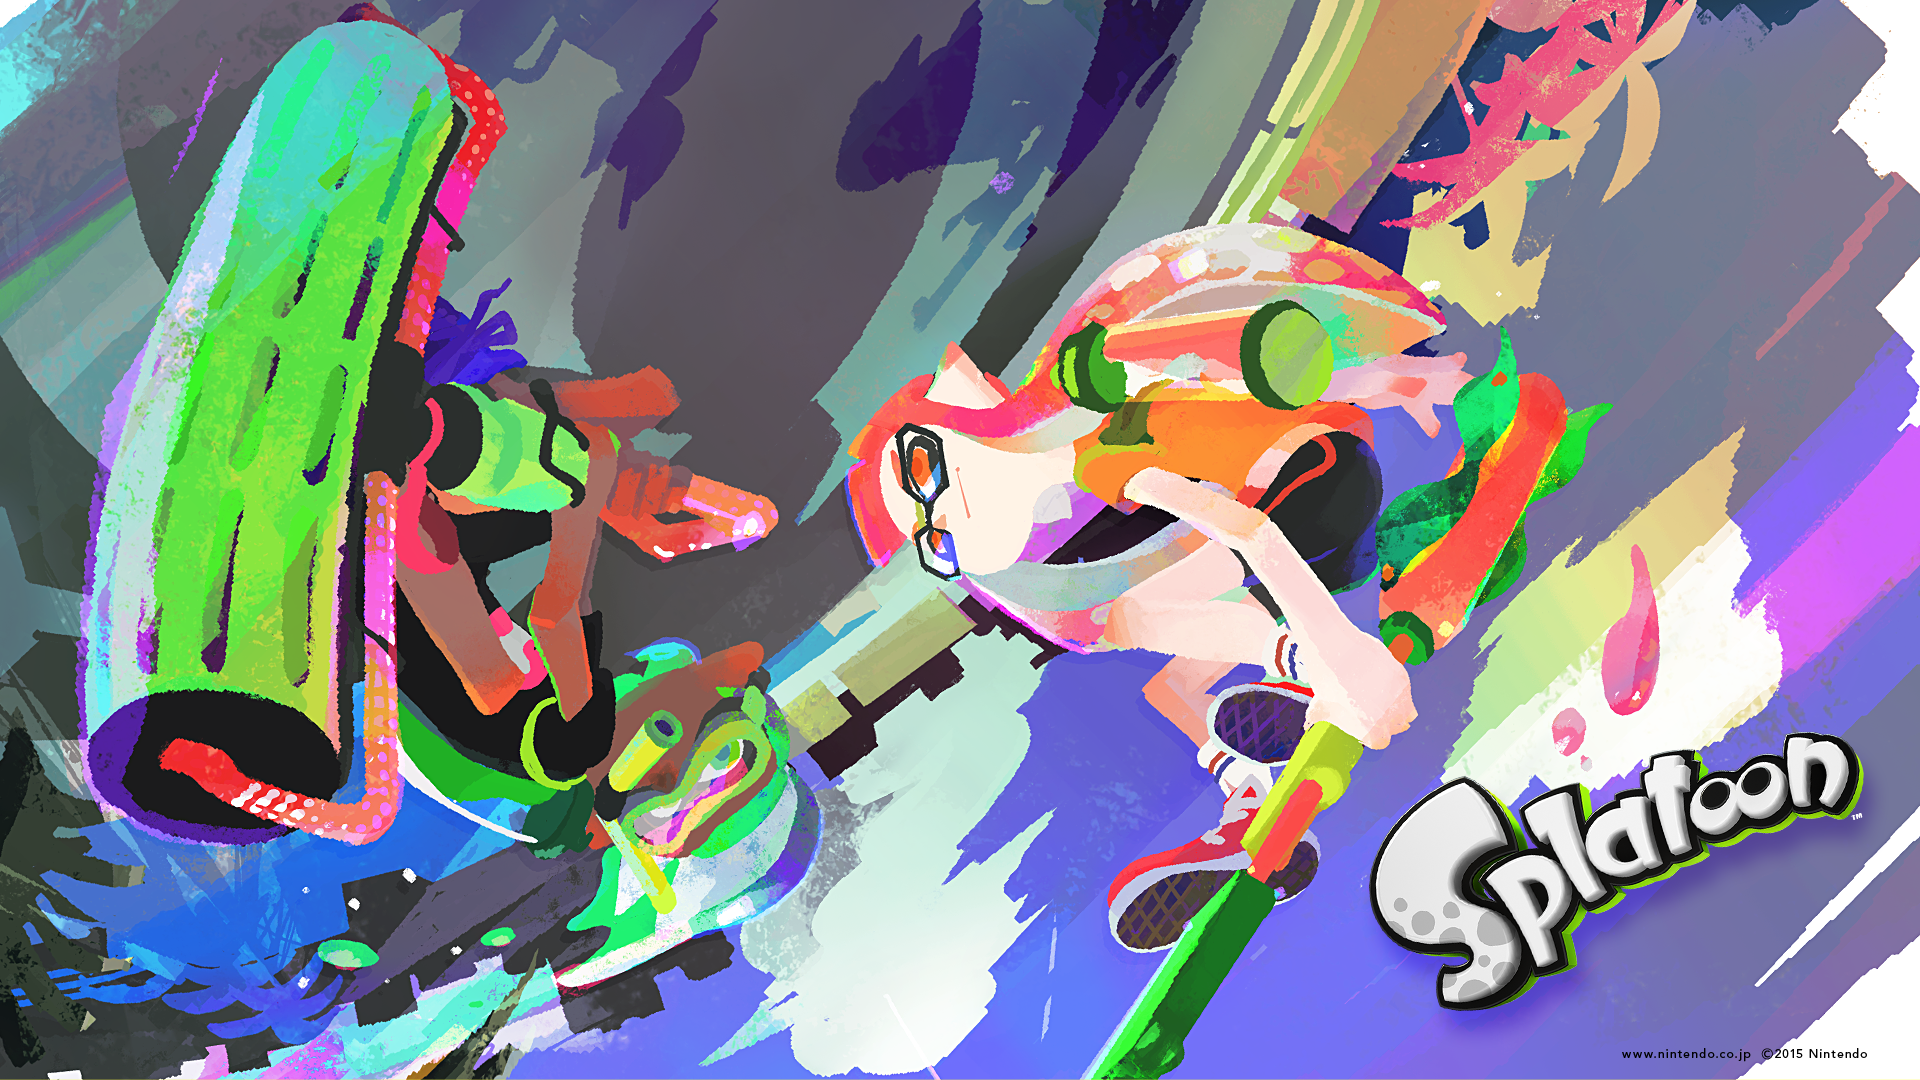 Splatoon Clipart 1080p.